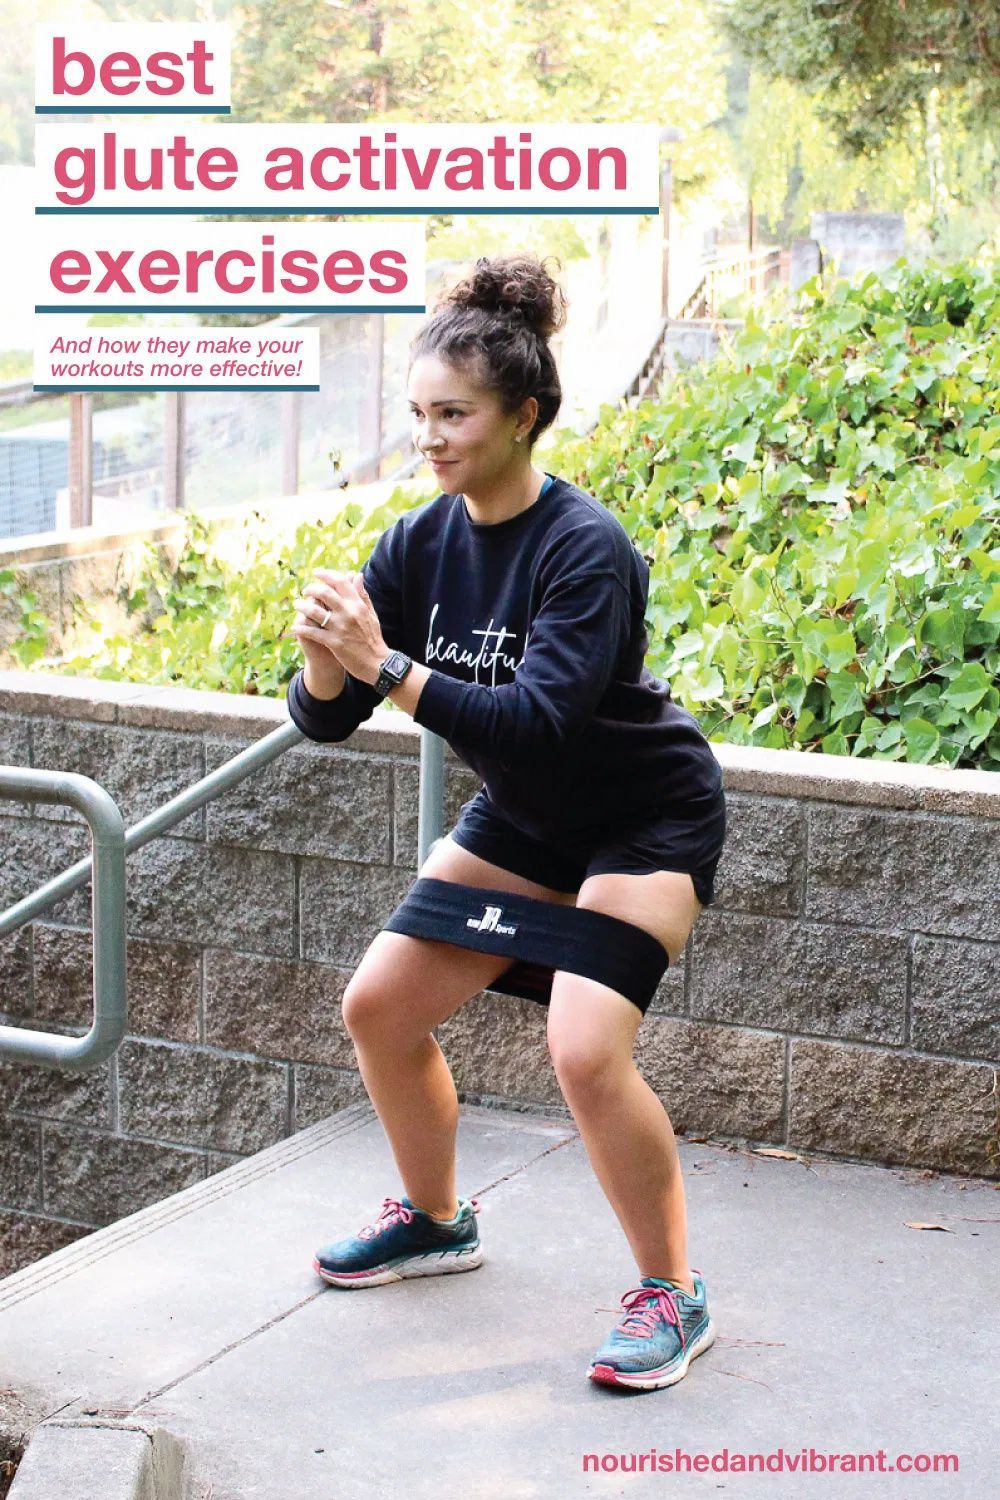 Best Glute Activation Exercises & How They Make Workouts More Effective - Nourished and Vibrant